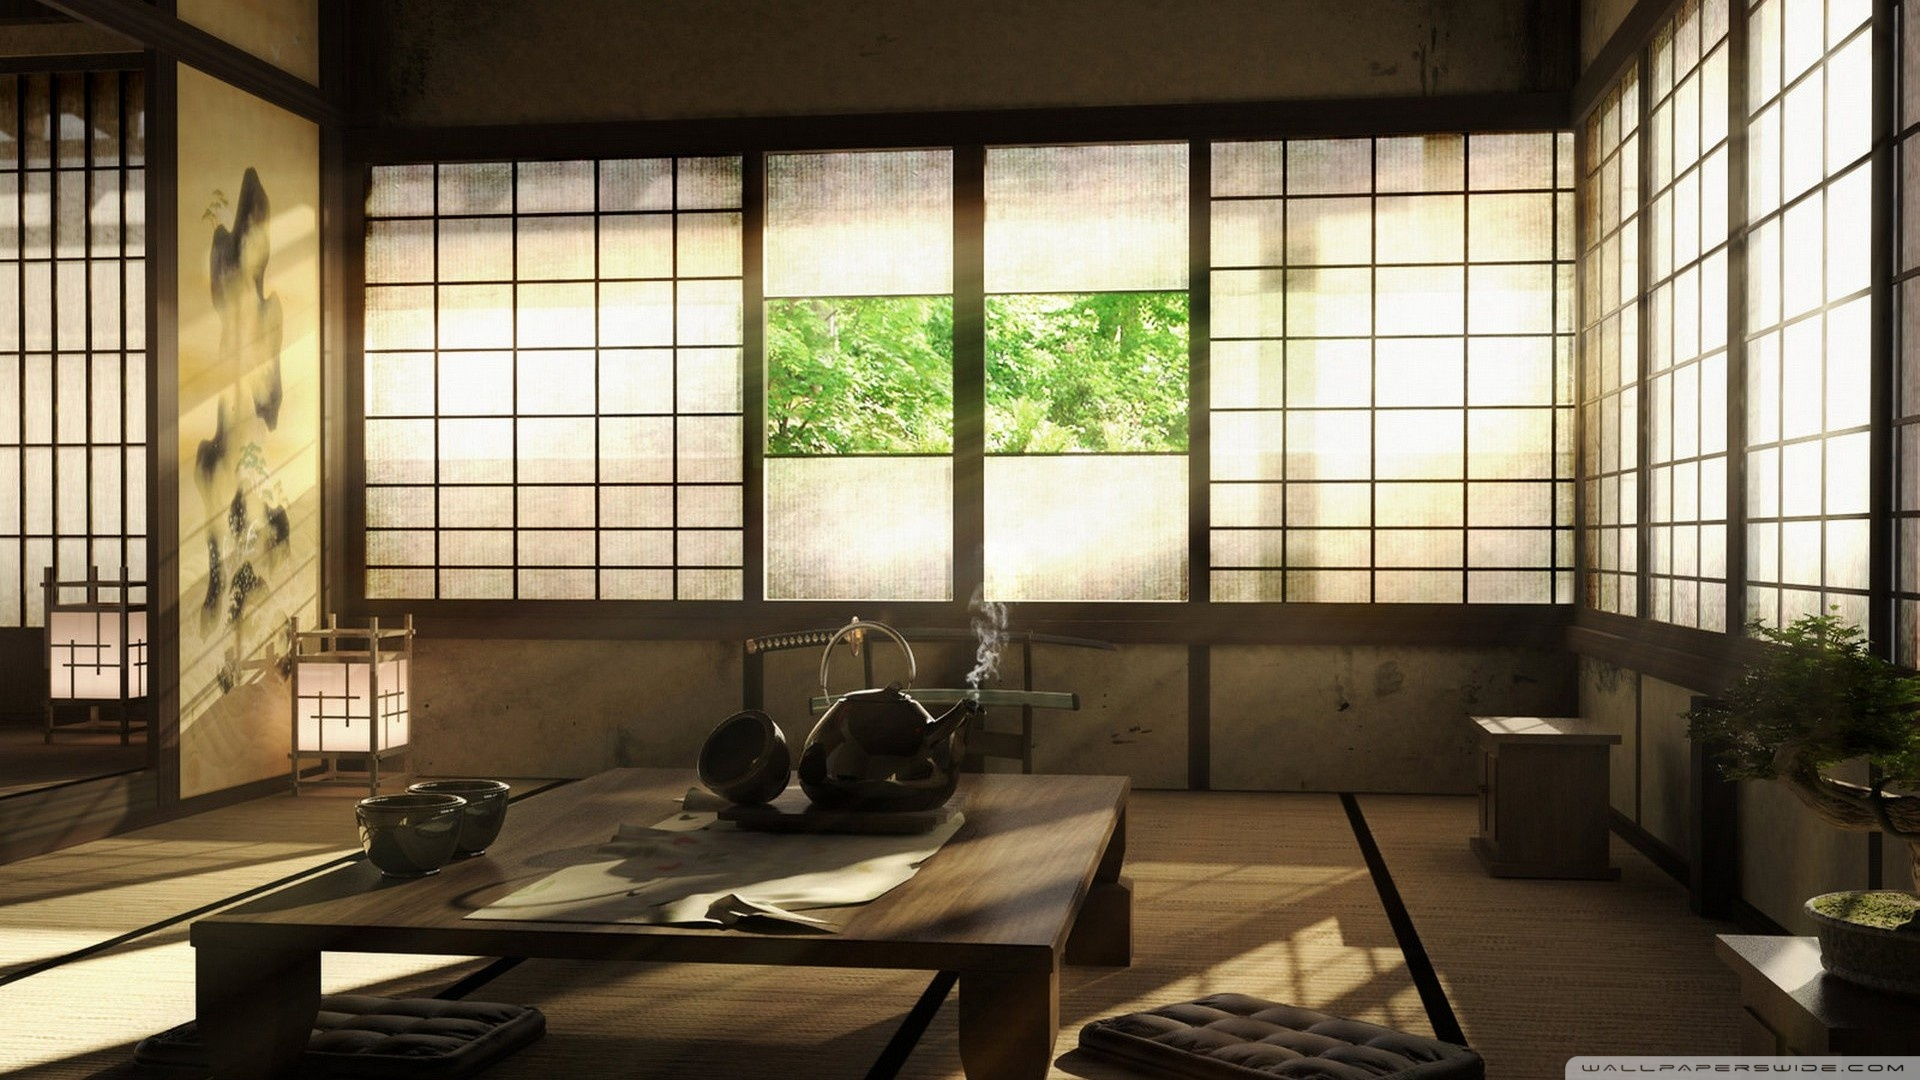 japan-room-1920x1080-1920×1080-wallpaper-wpc9006719